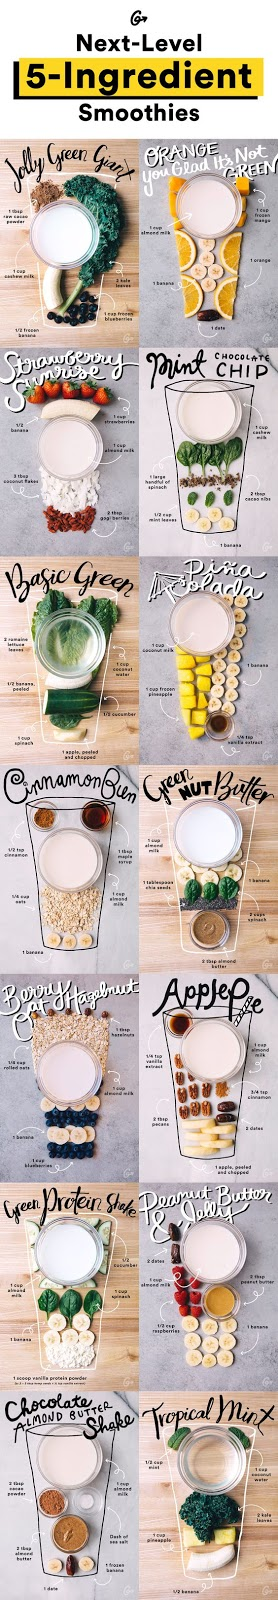 5-Ingredient Smoothies That Taste and Look So Good We Want to Cry